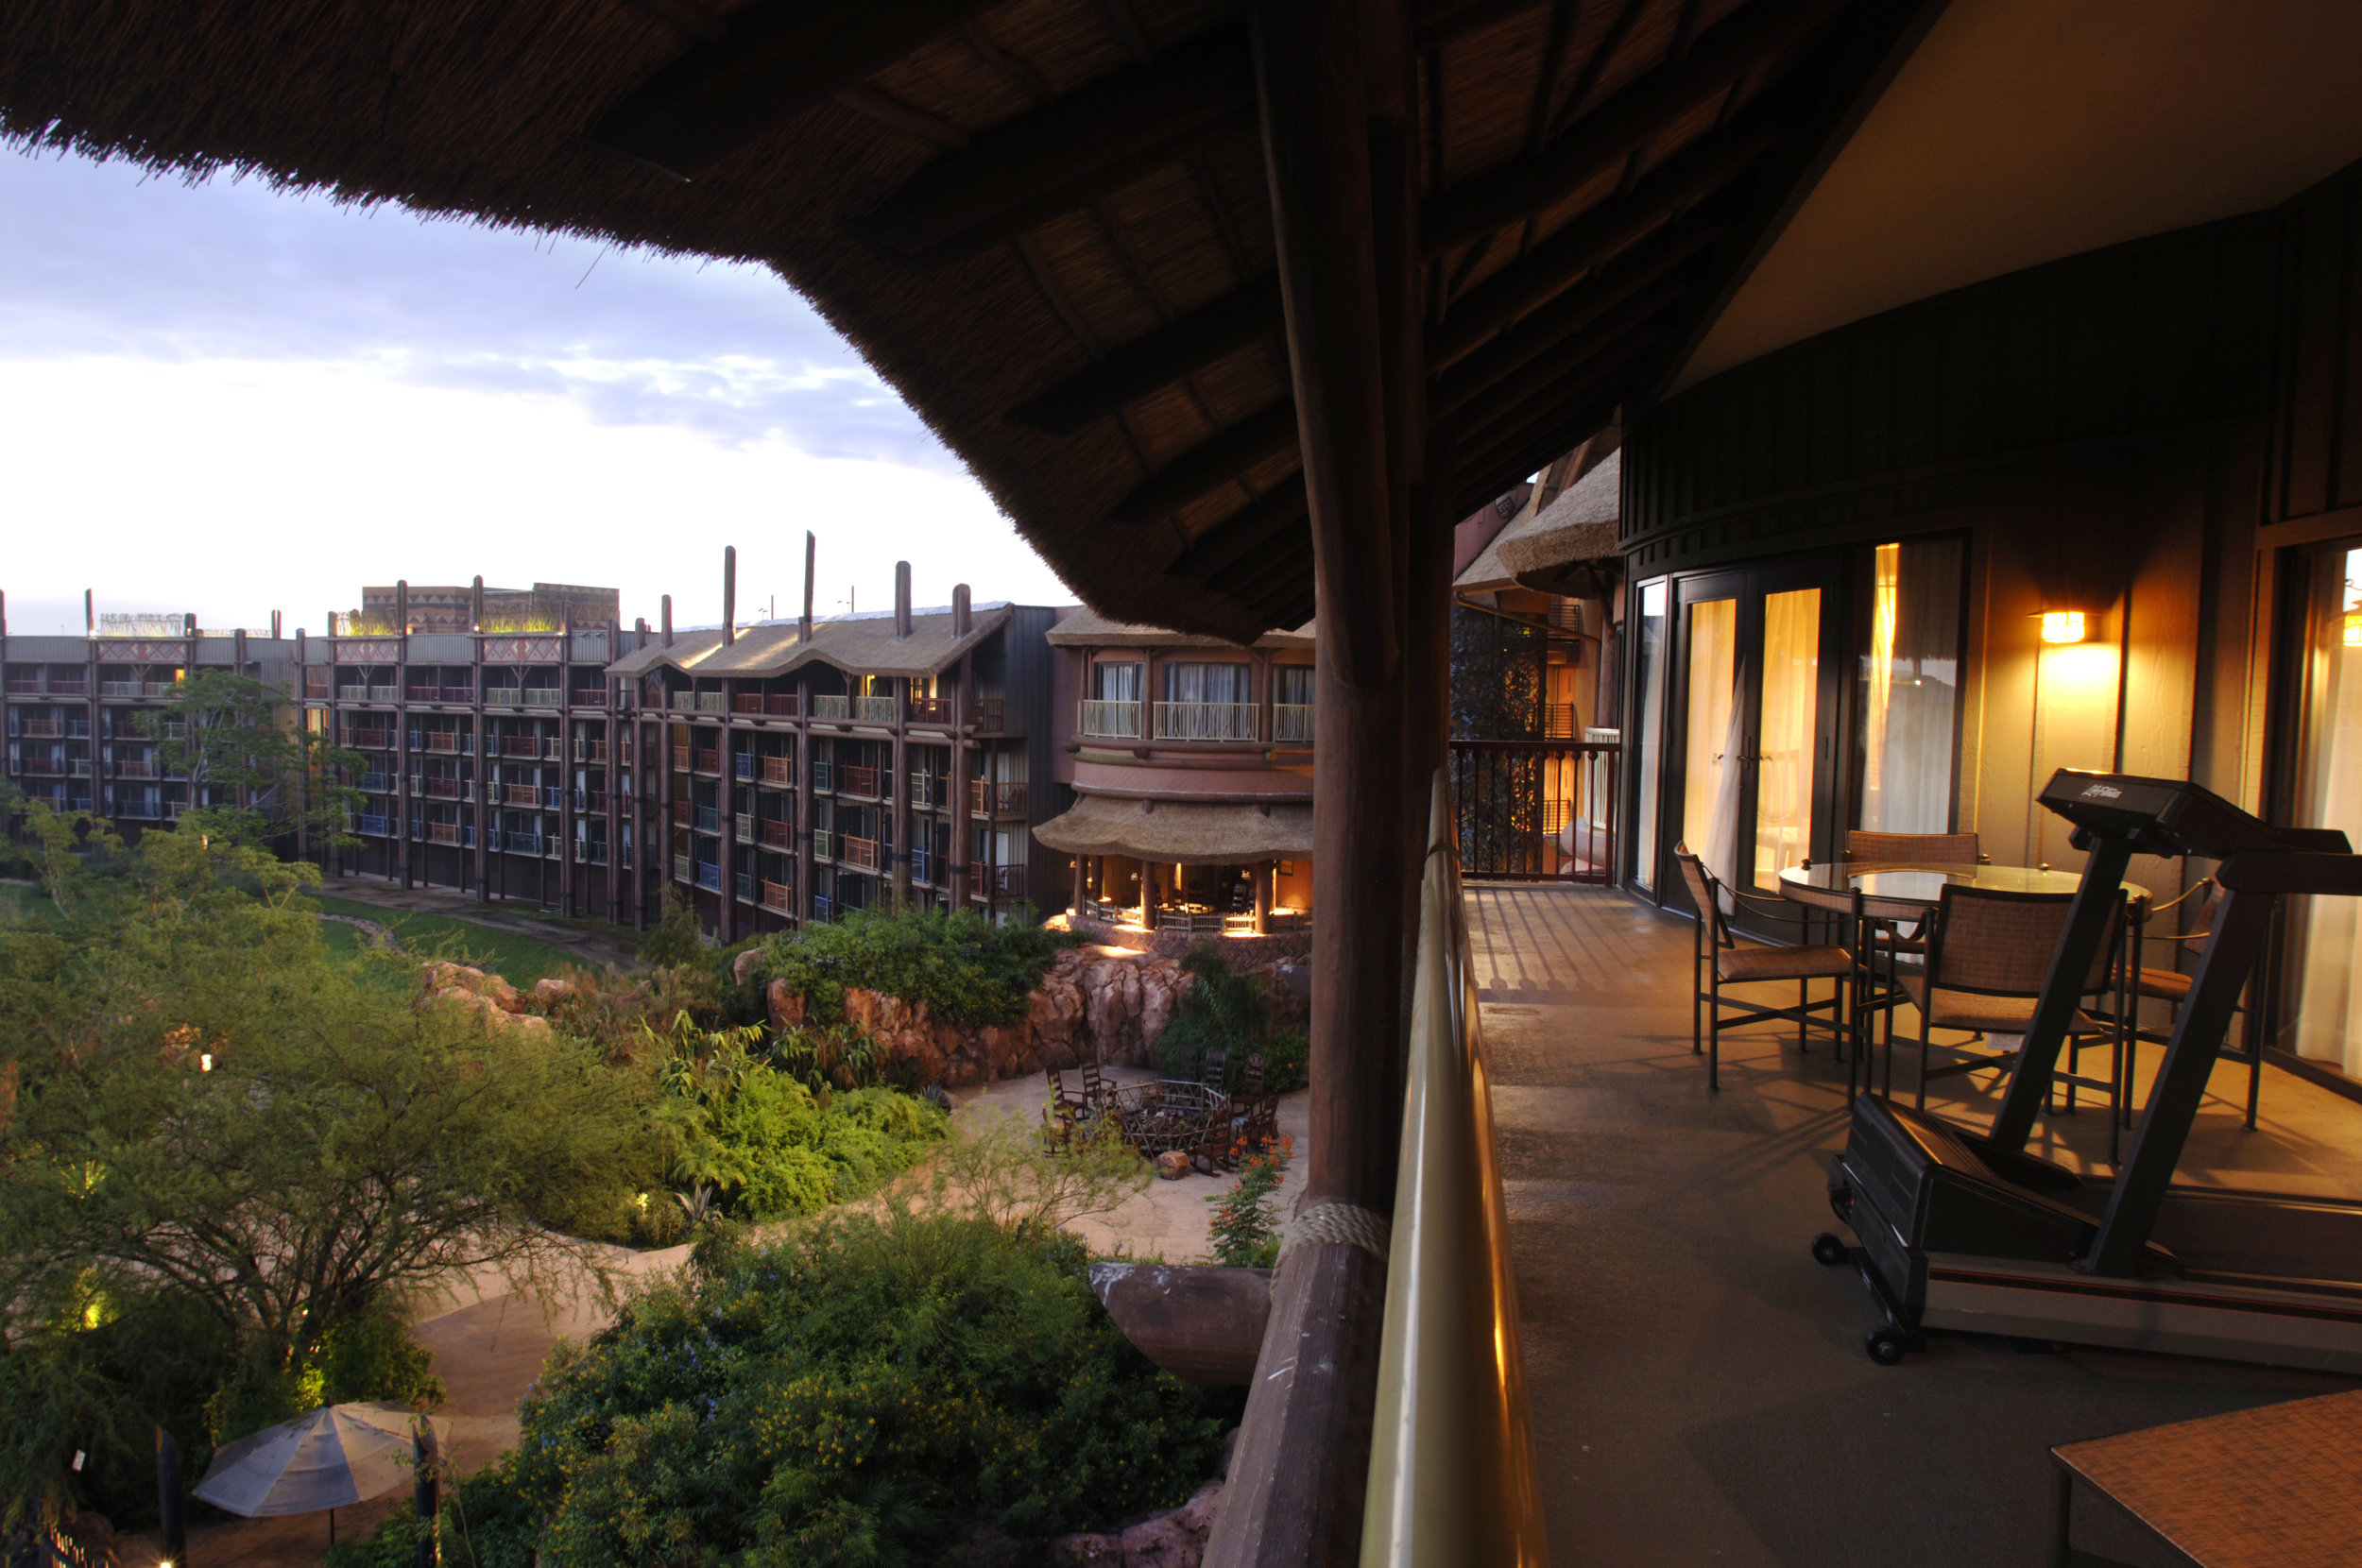 Disneys_Animal_Kingdom_Lodge_(2831923112).jpg